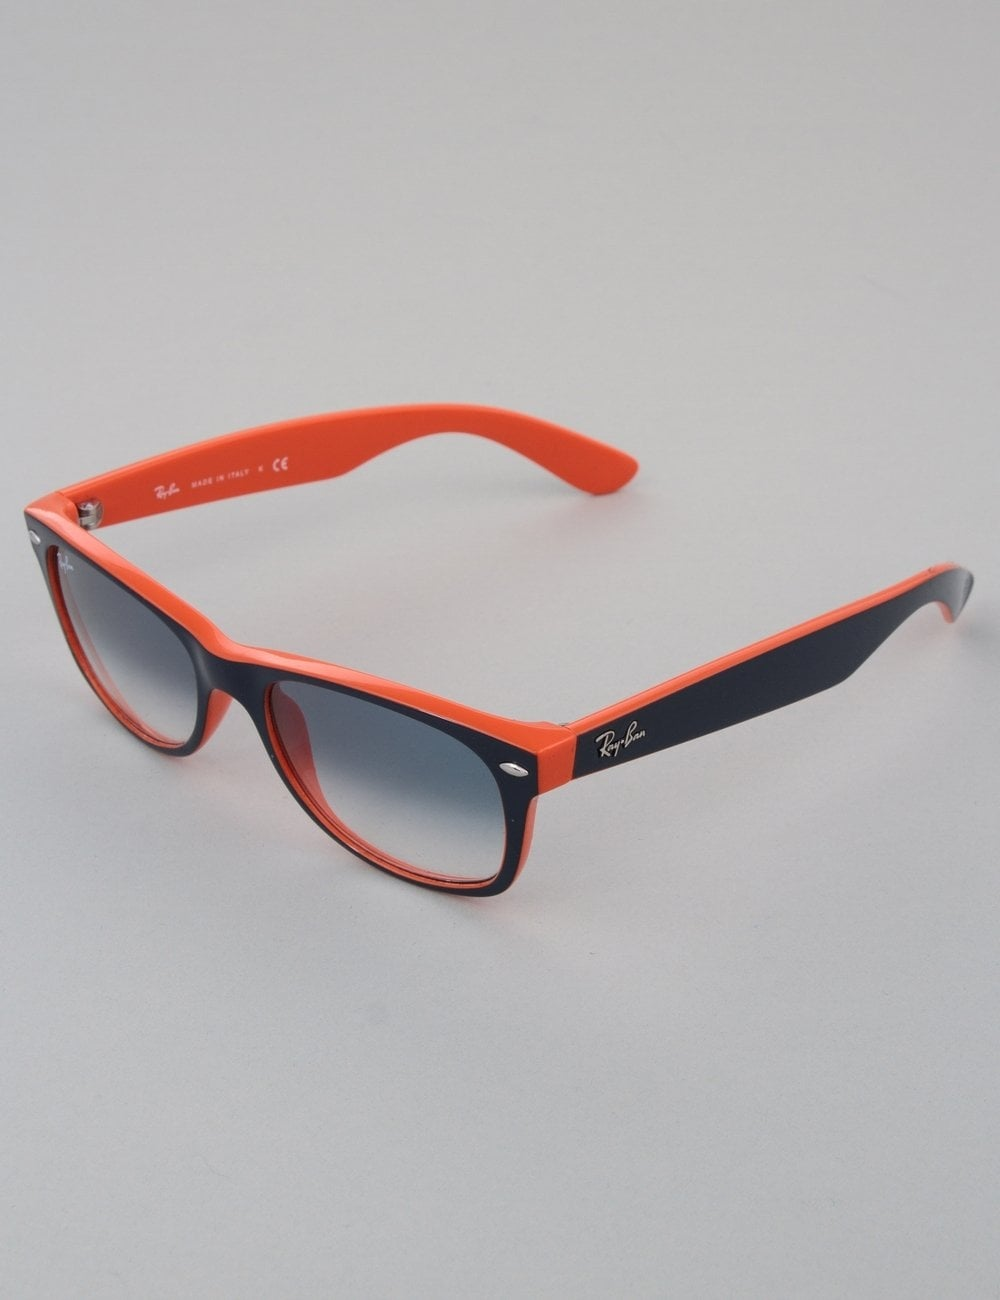 a9aee66cb Ray-Ban New Wayfarer Sunglasses - Top Blue/Orange // Crystal Gradient Light  Blue